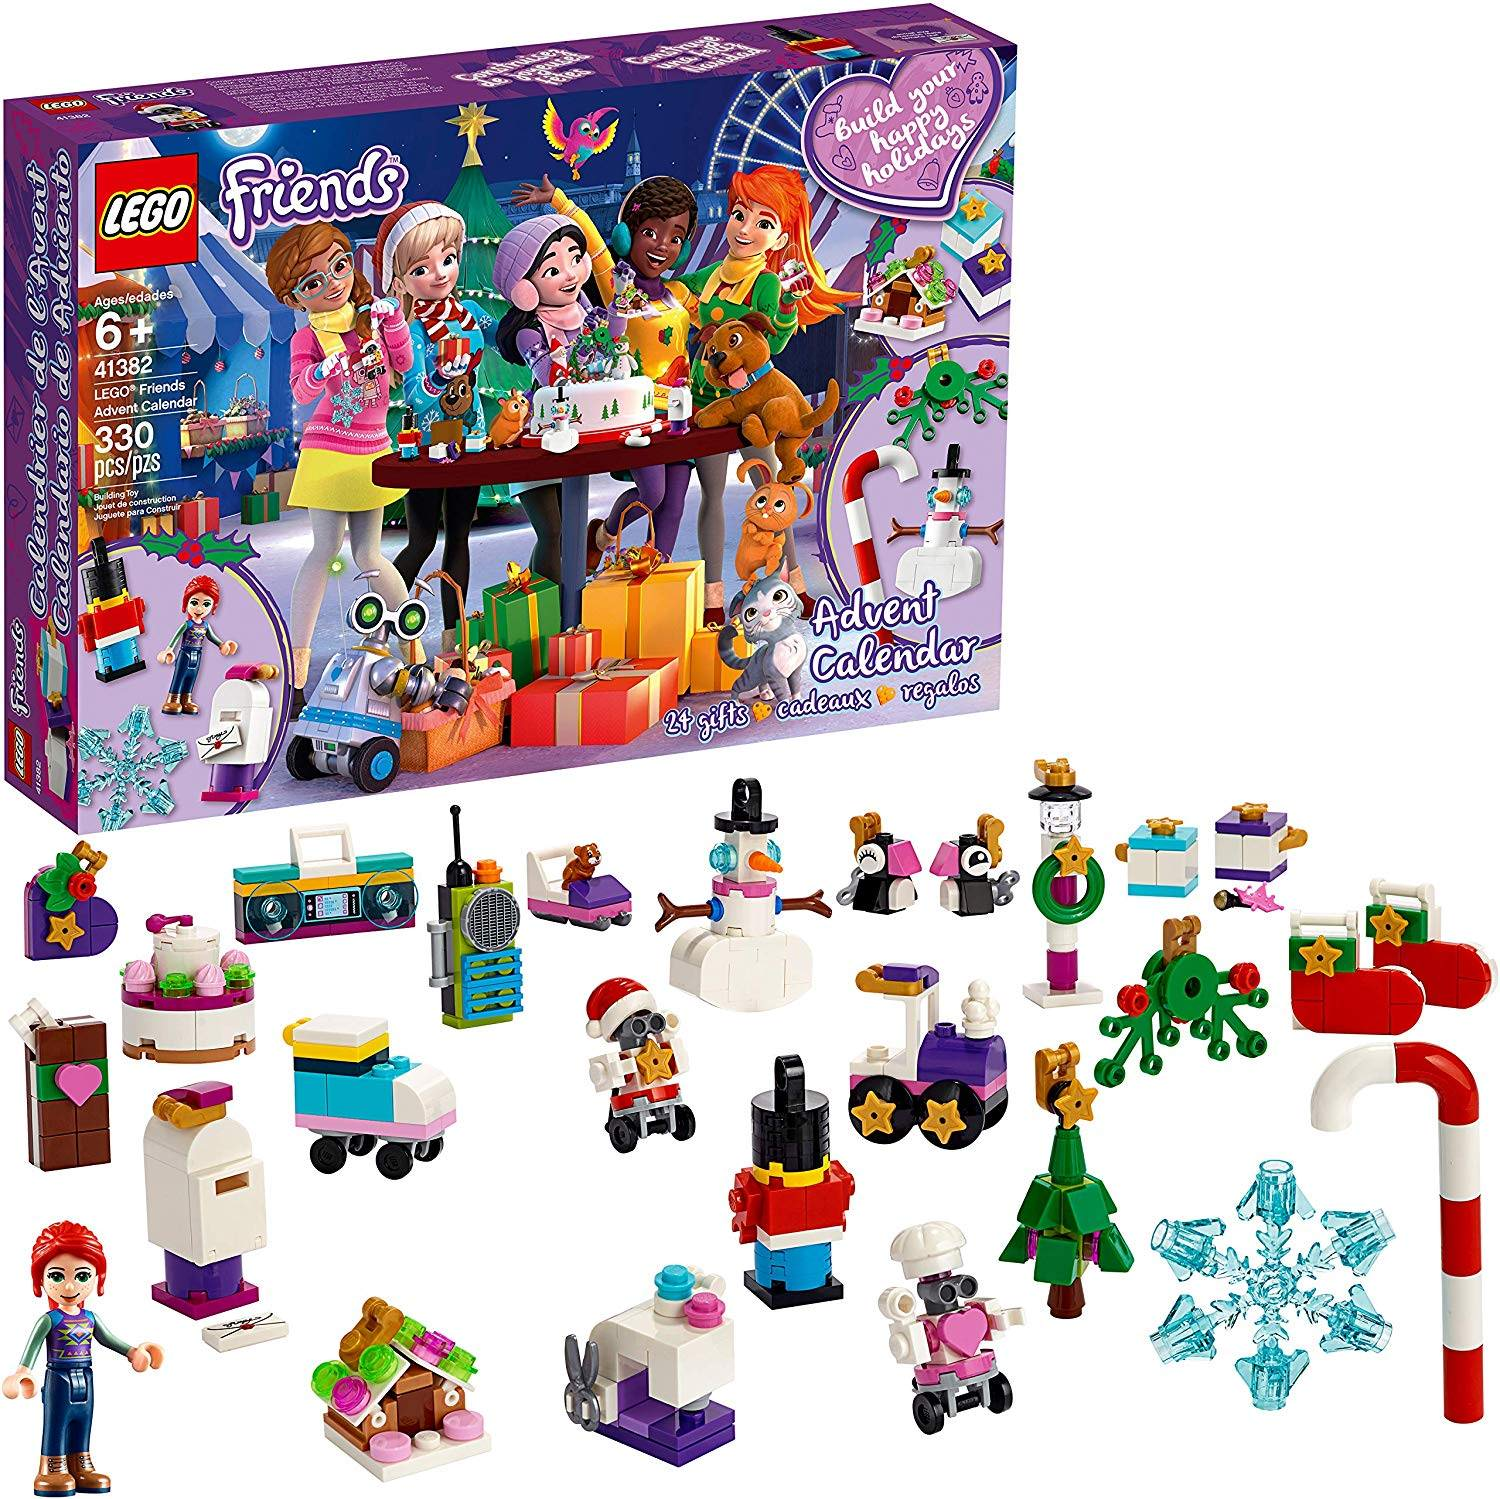 LEGO Friends Advent Calendar 41382 Building Kit (330 Pieces)